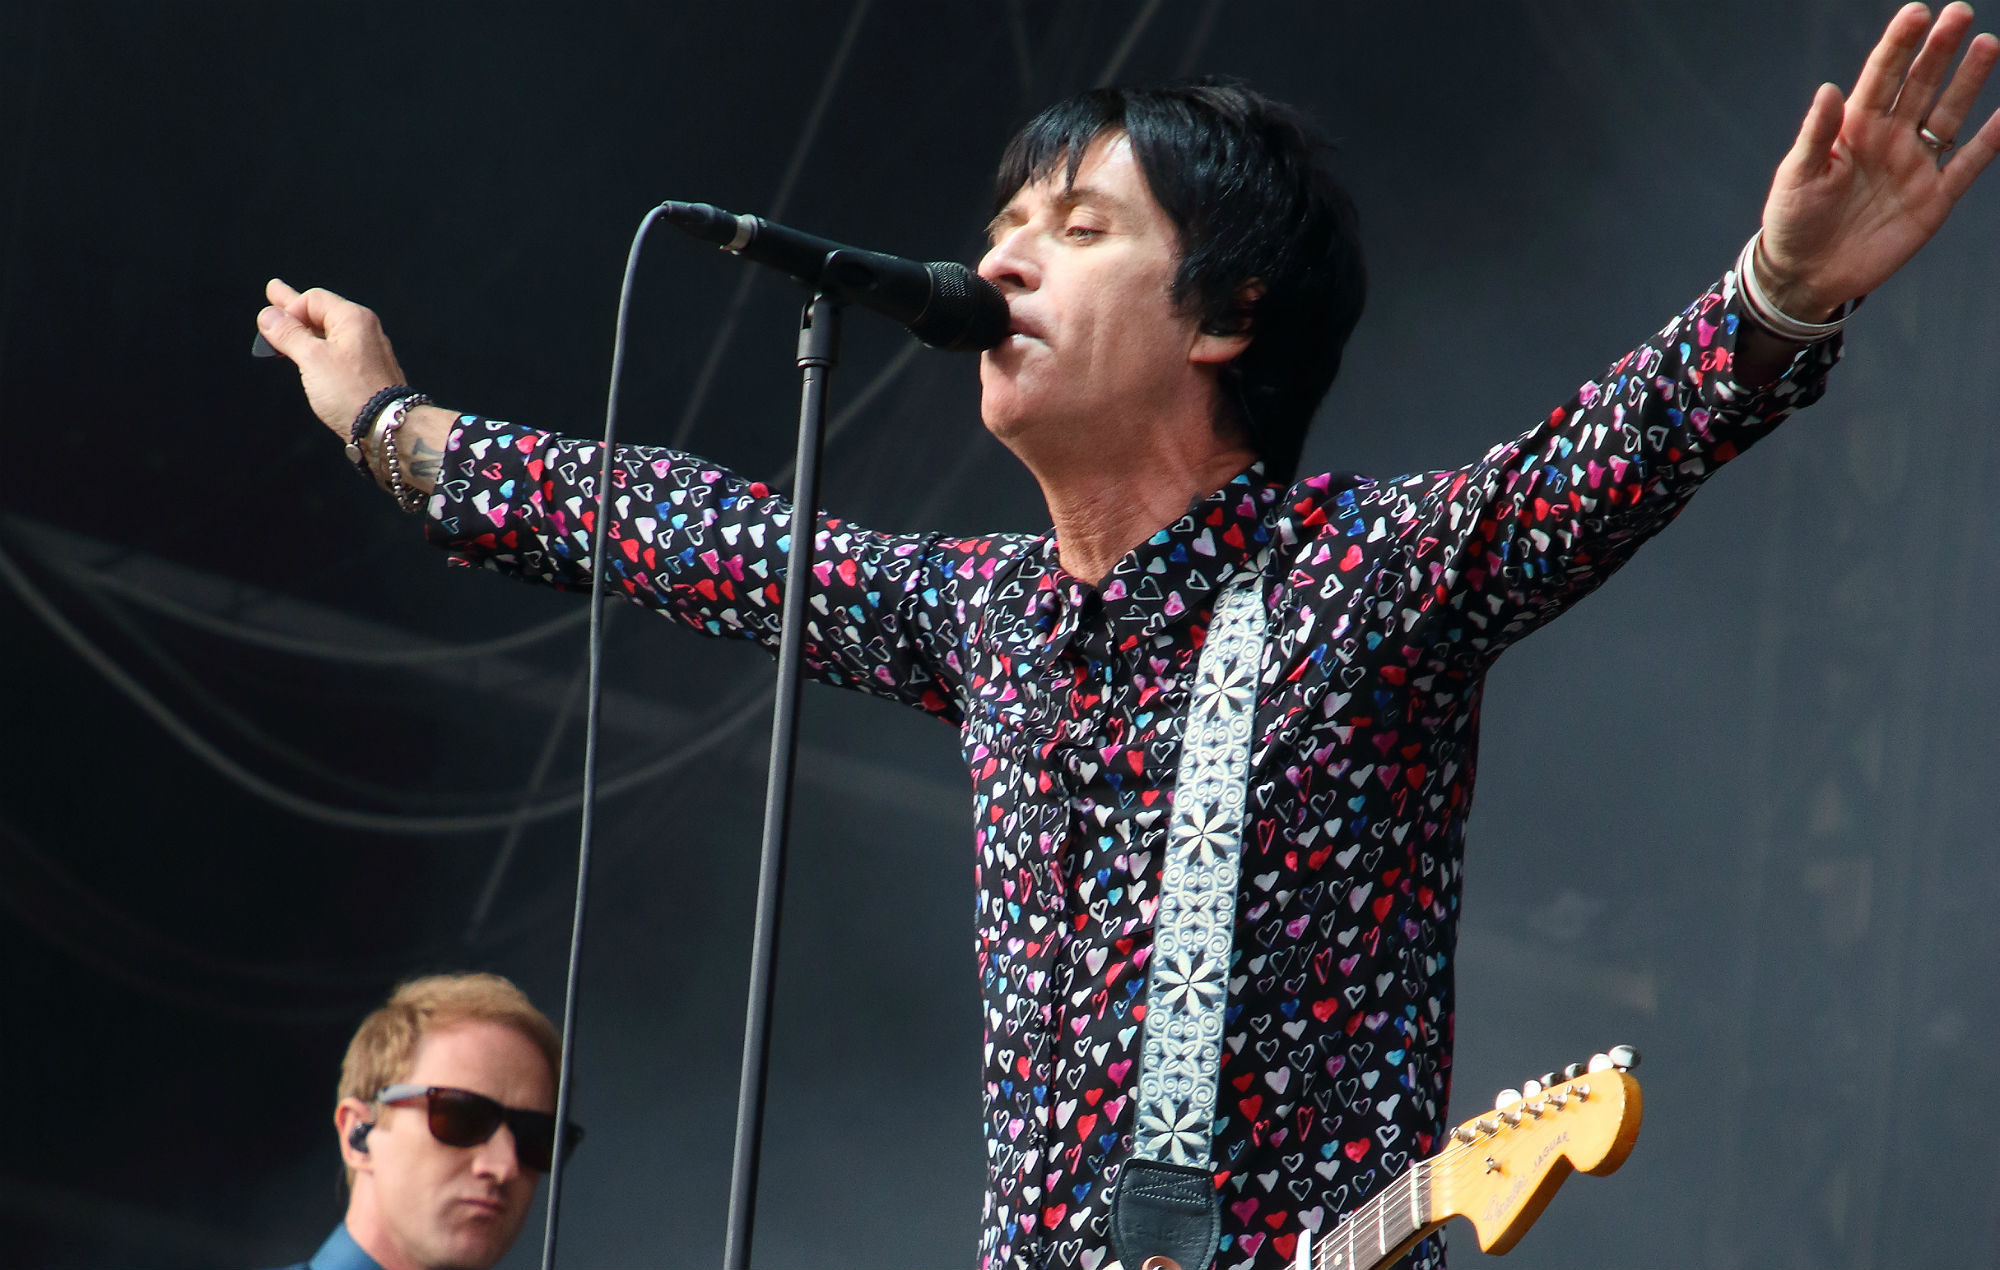 """Johnny Marr on The Smiths' legacy and Morrissey: """"You can't change history. The songs are out there for people to judge"""""""